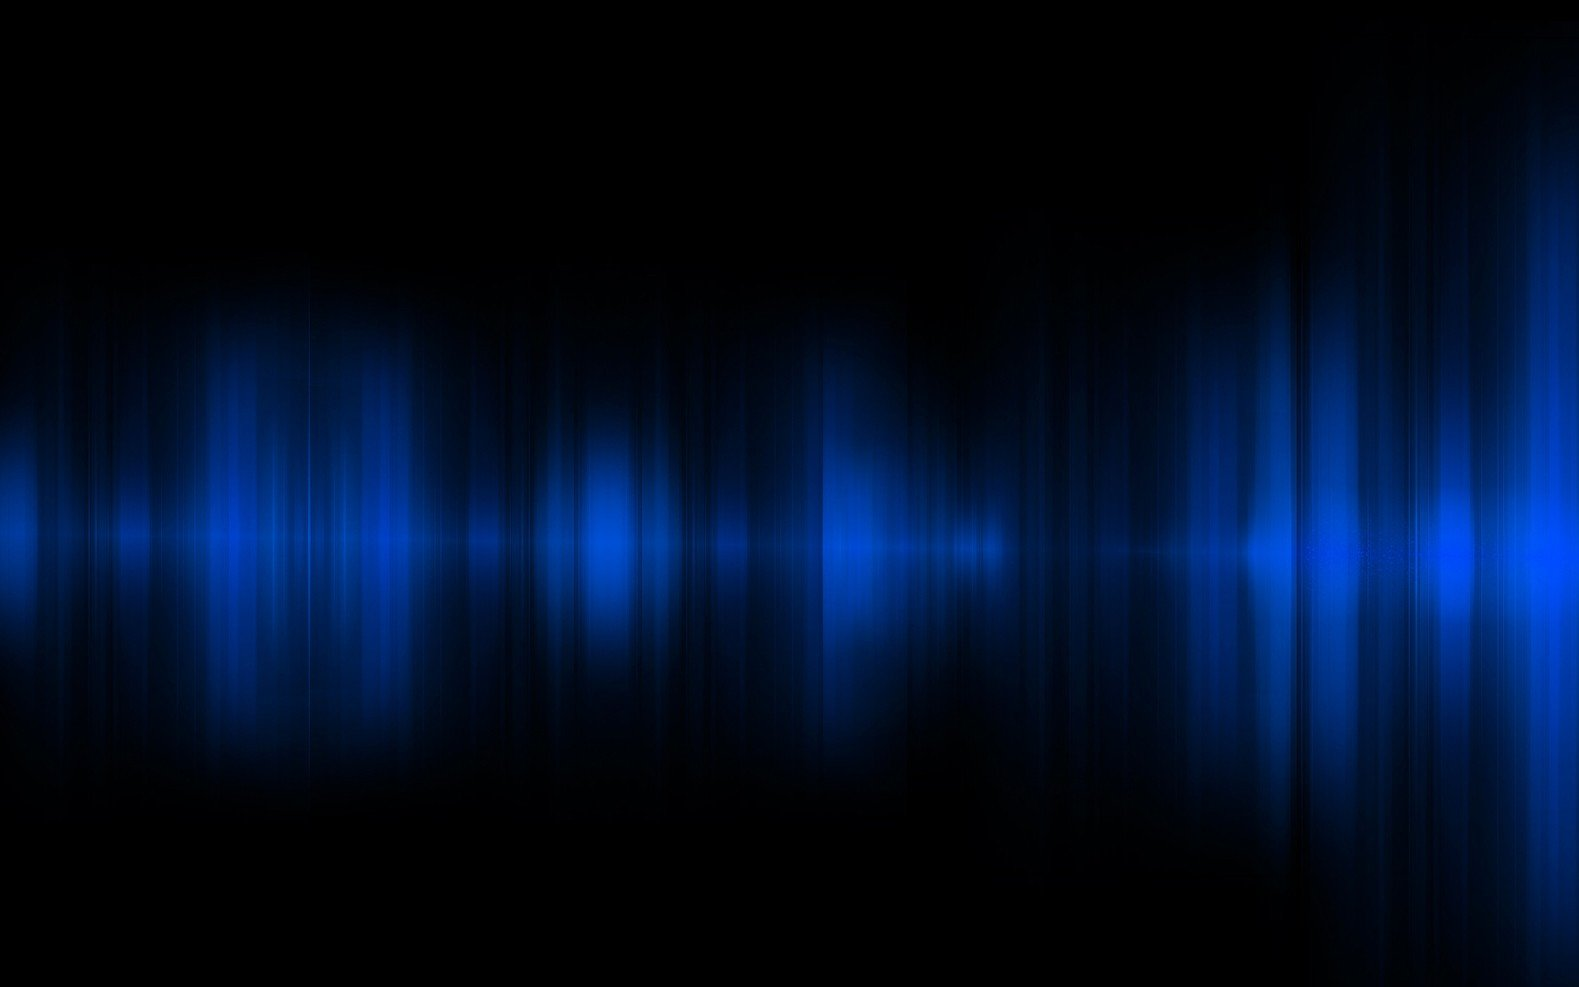 Digital Backgrounds for Photos Abstract Blue Digital Art Black Background High